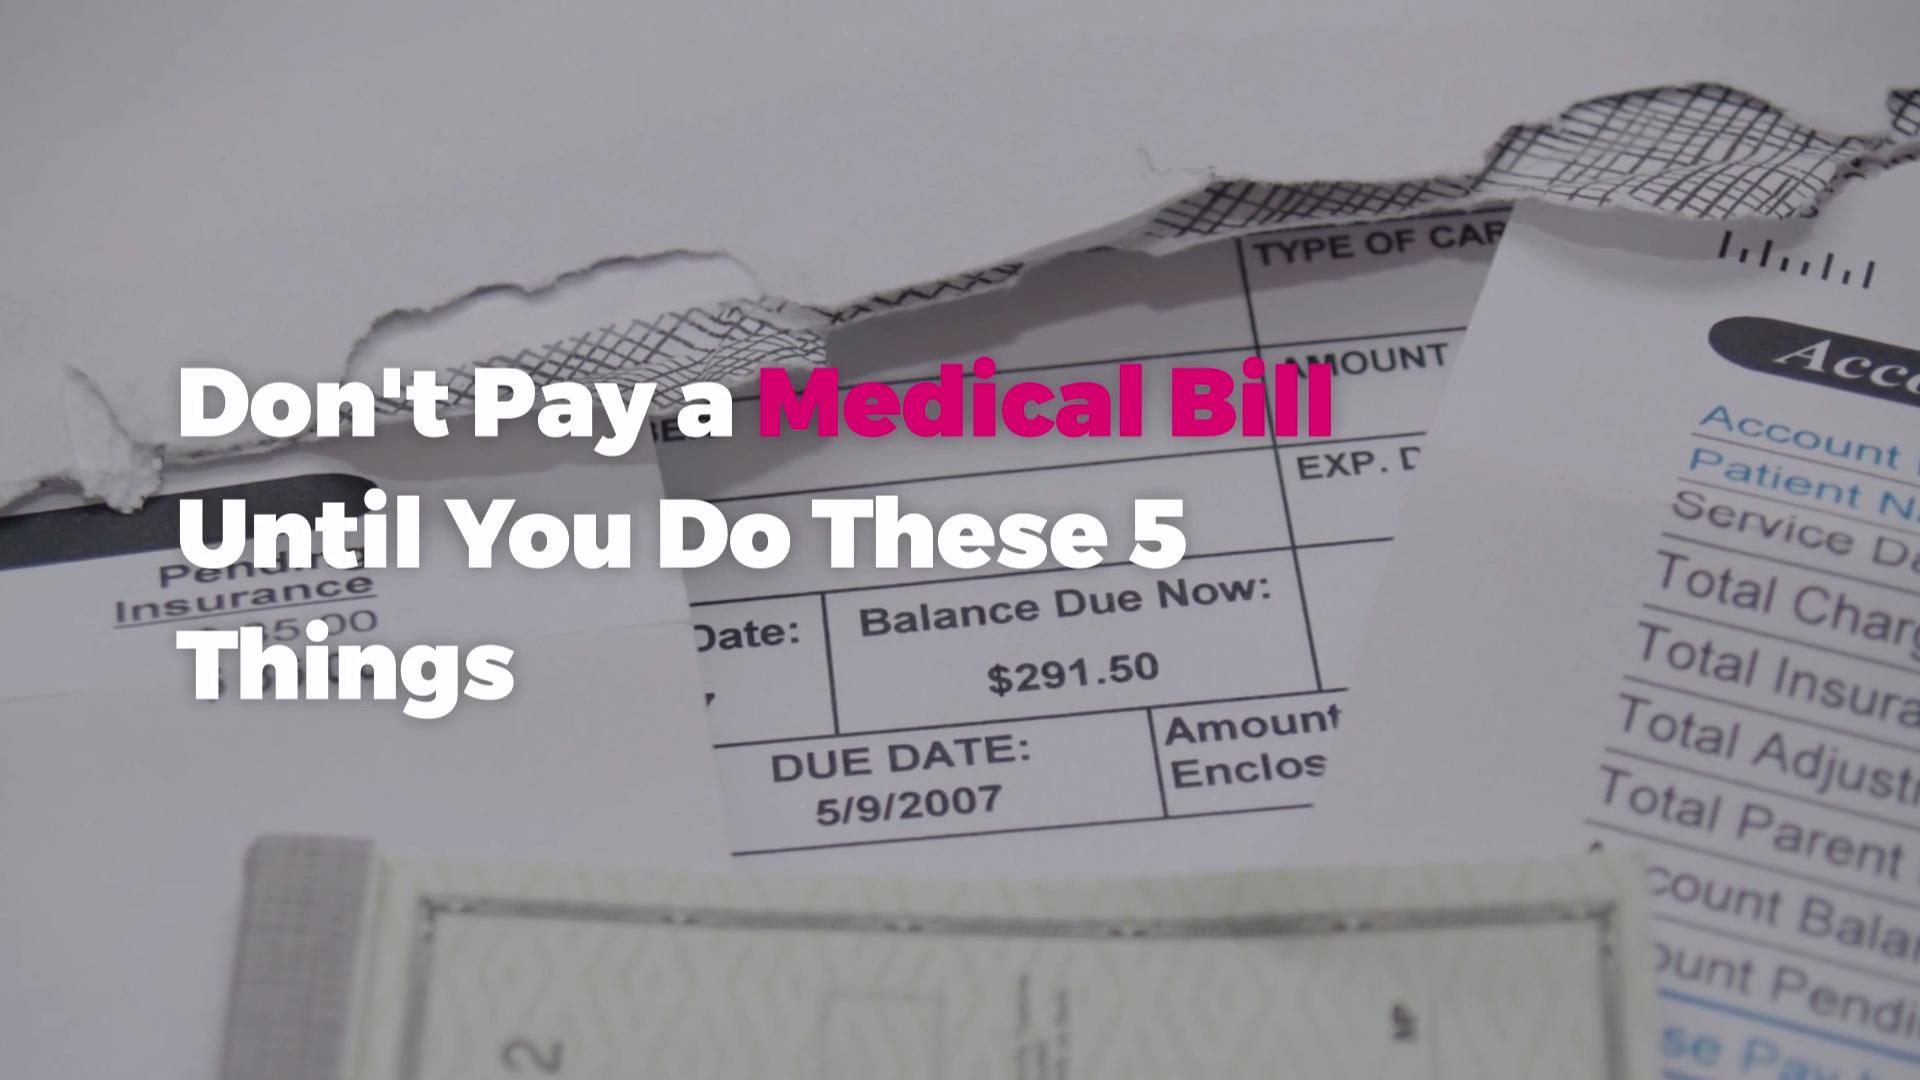 Don't Pay a Medical Bill Until You Do These 5 Things